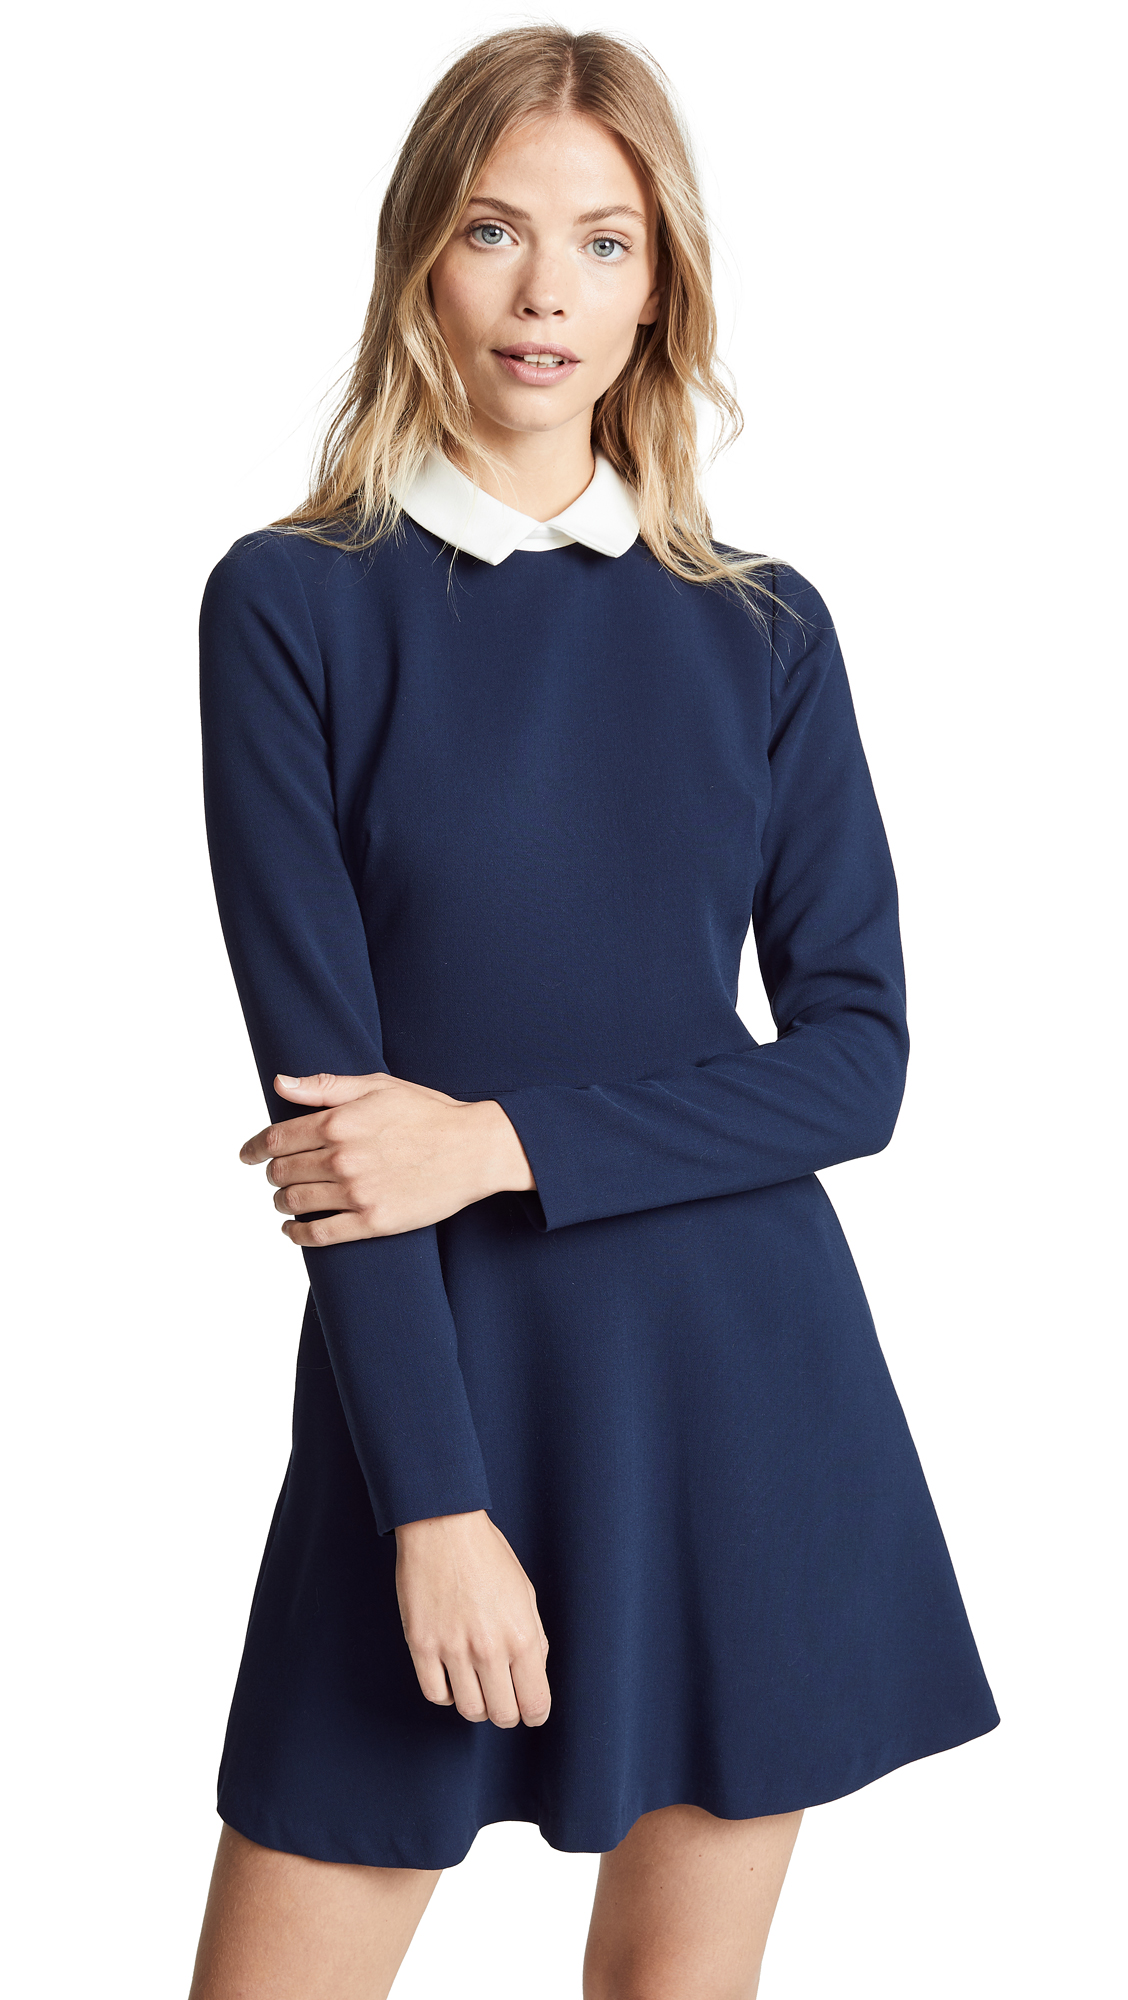 Black Halo Emmaline Mini Dress - Pacific Blue